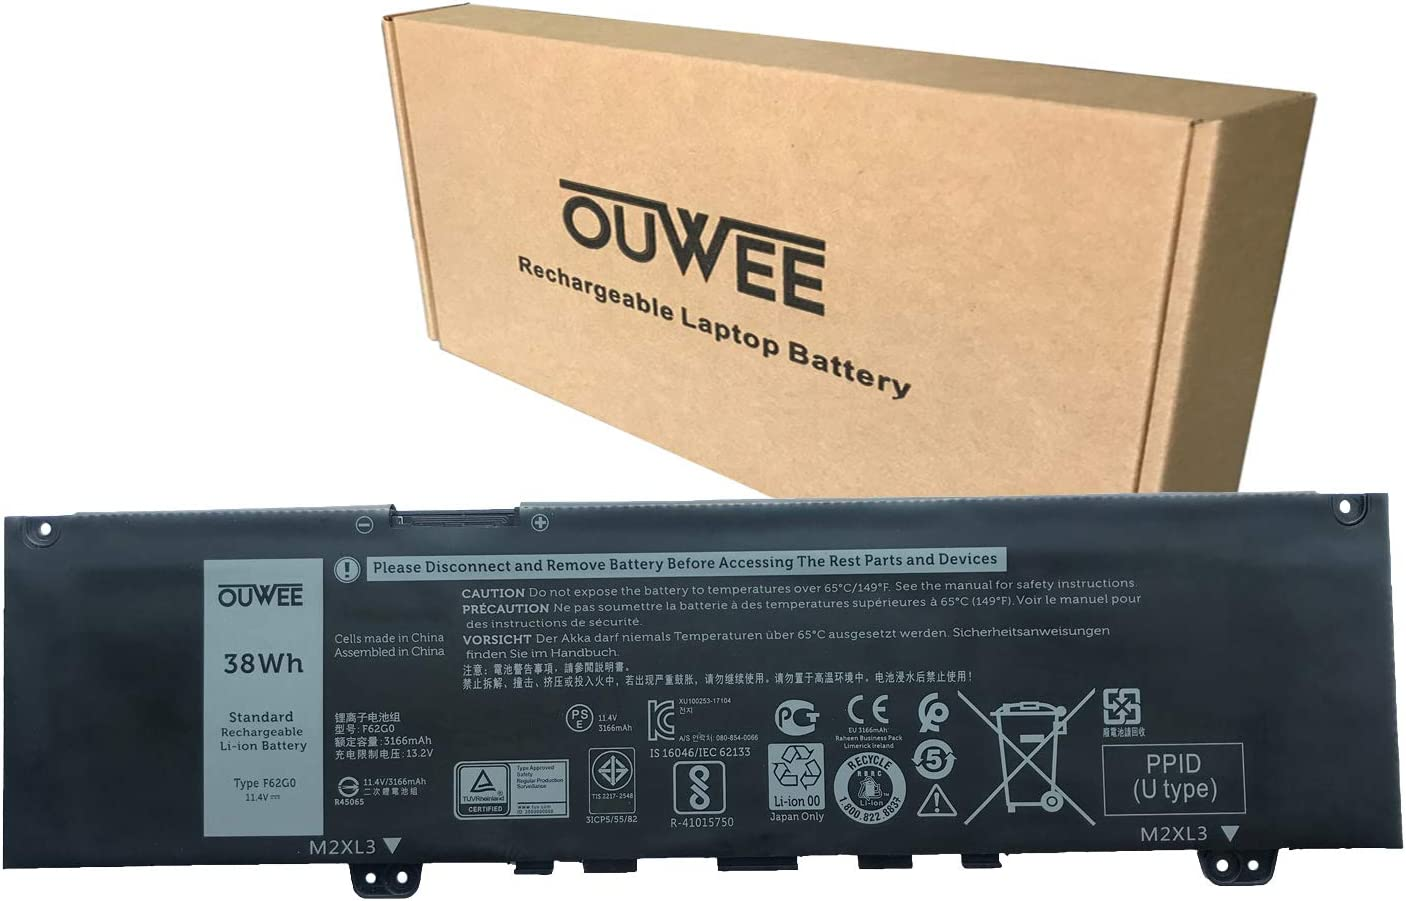 OUWEE F62G0 Laptop Battery Compatible Inspiron Dell 5370 25% OFF 73 with Direct sale of manufacturer